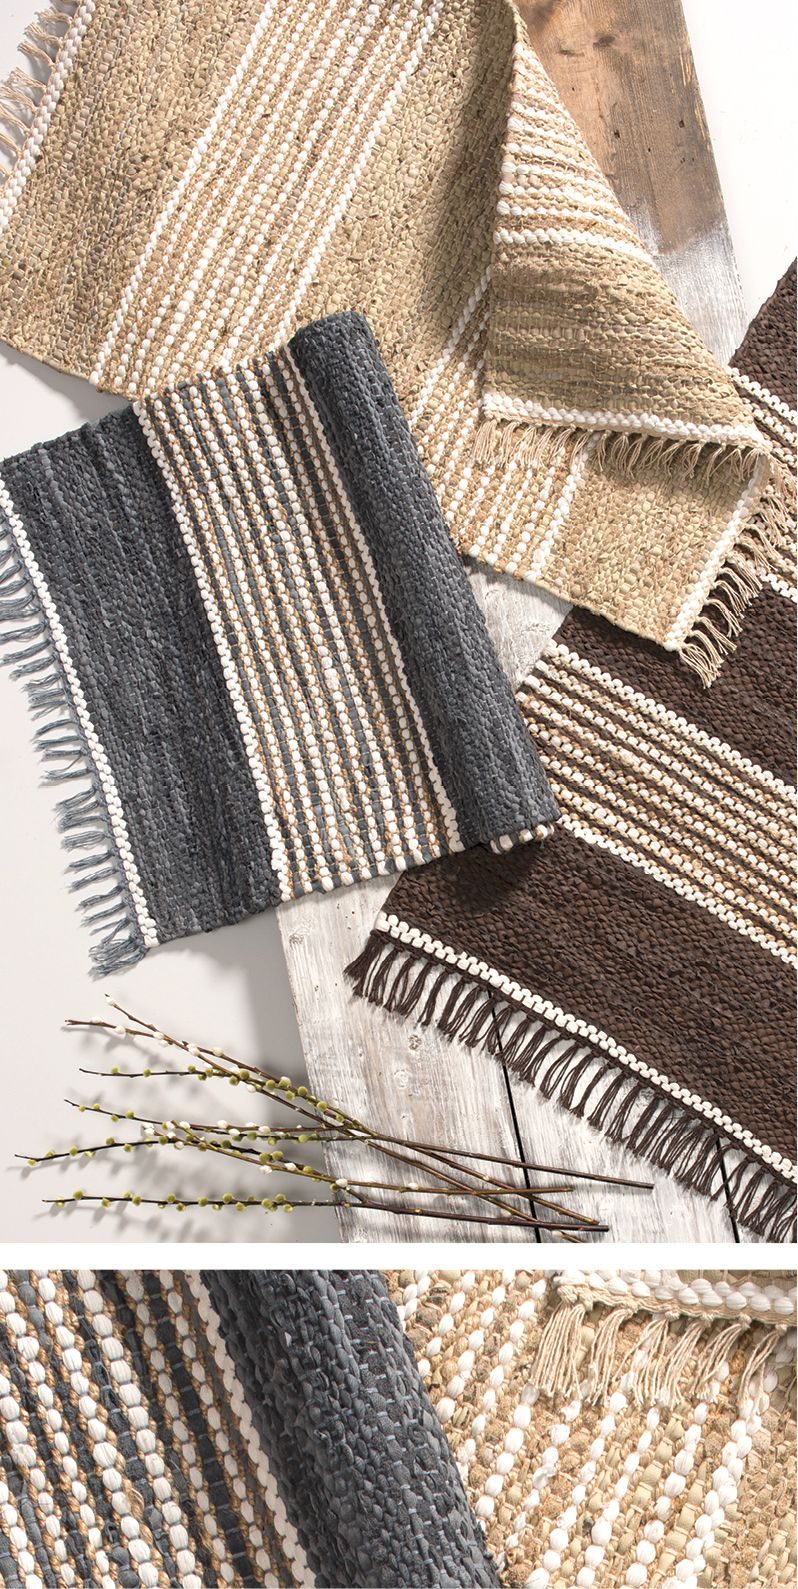 Taj Recycled Leather Jute Rugs With A Choice Of 2 Sizes And 3 Natural Colours They Subtlely Fit In Any Room Hand Patterned Carpet Recycled Leather Jute Rug